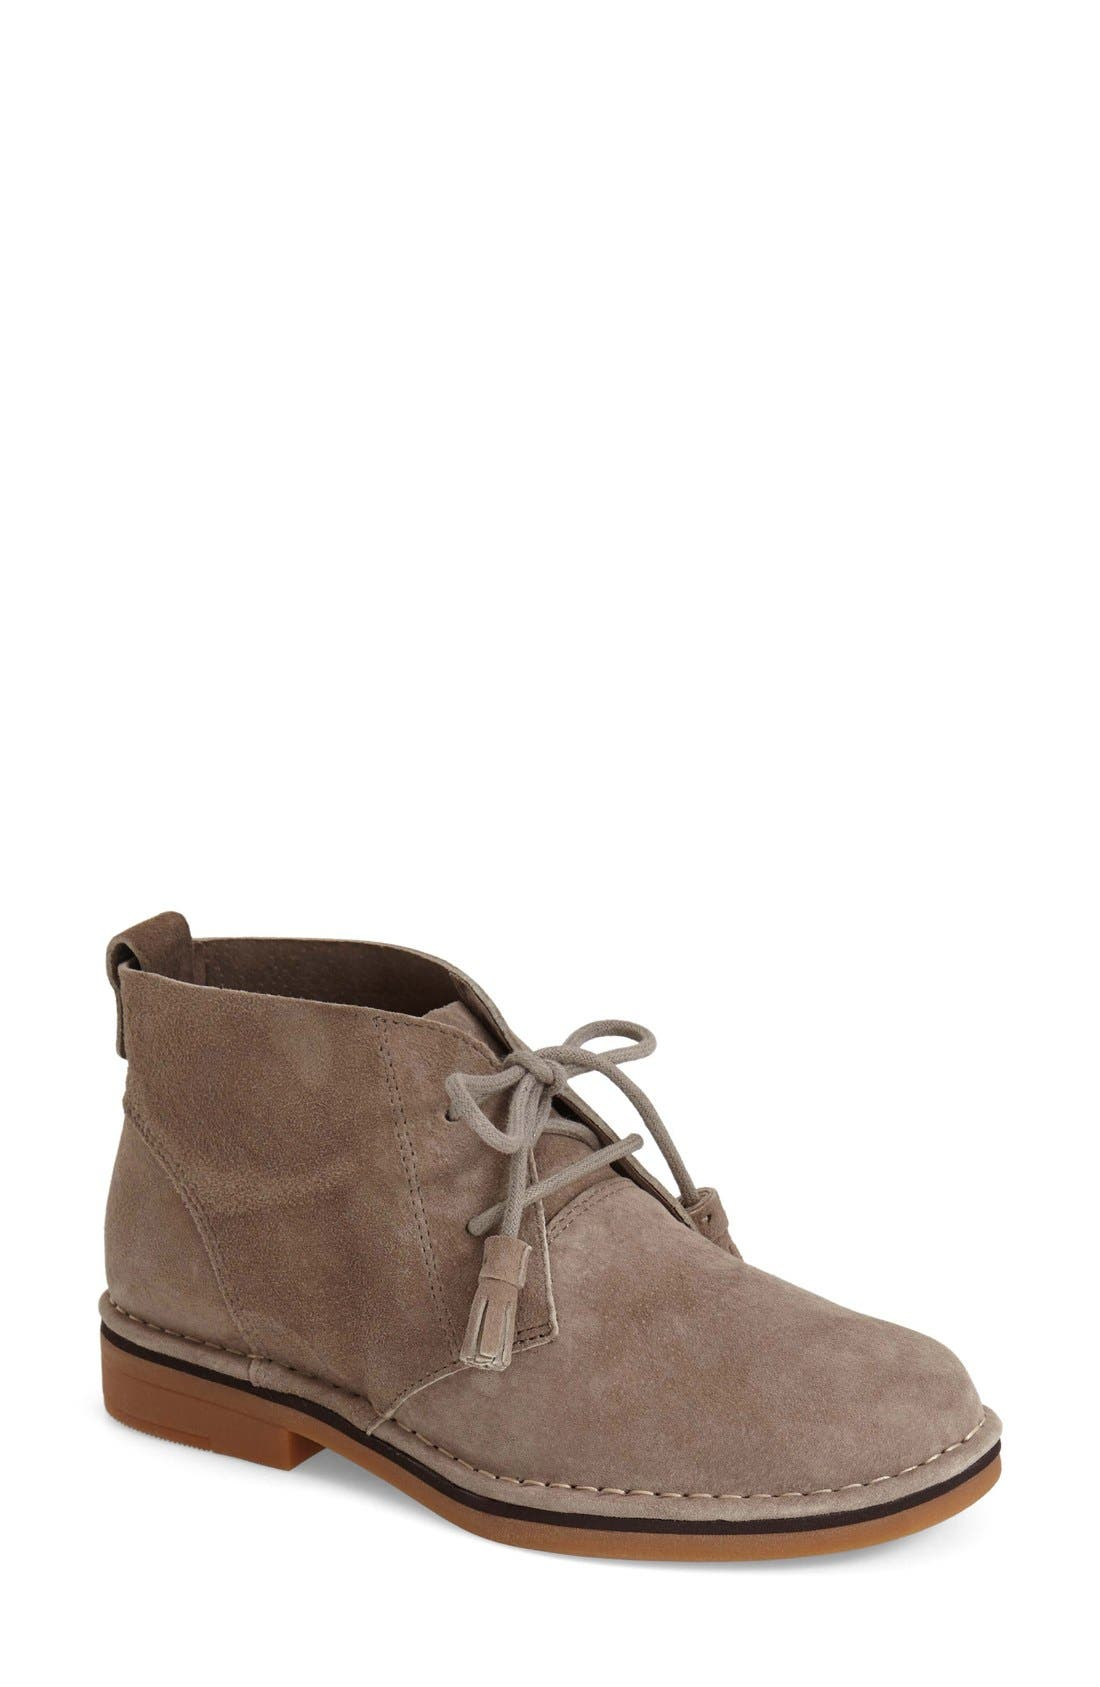 Hush Puppies Cyra Catelyn Chukka Boot, Brown